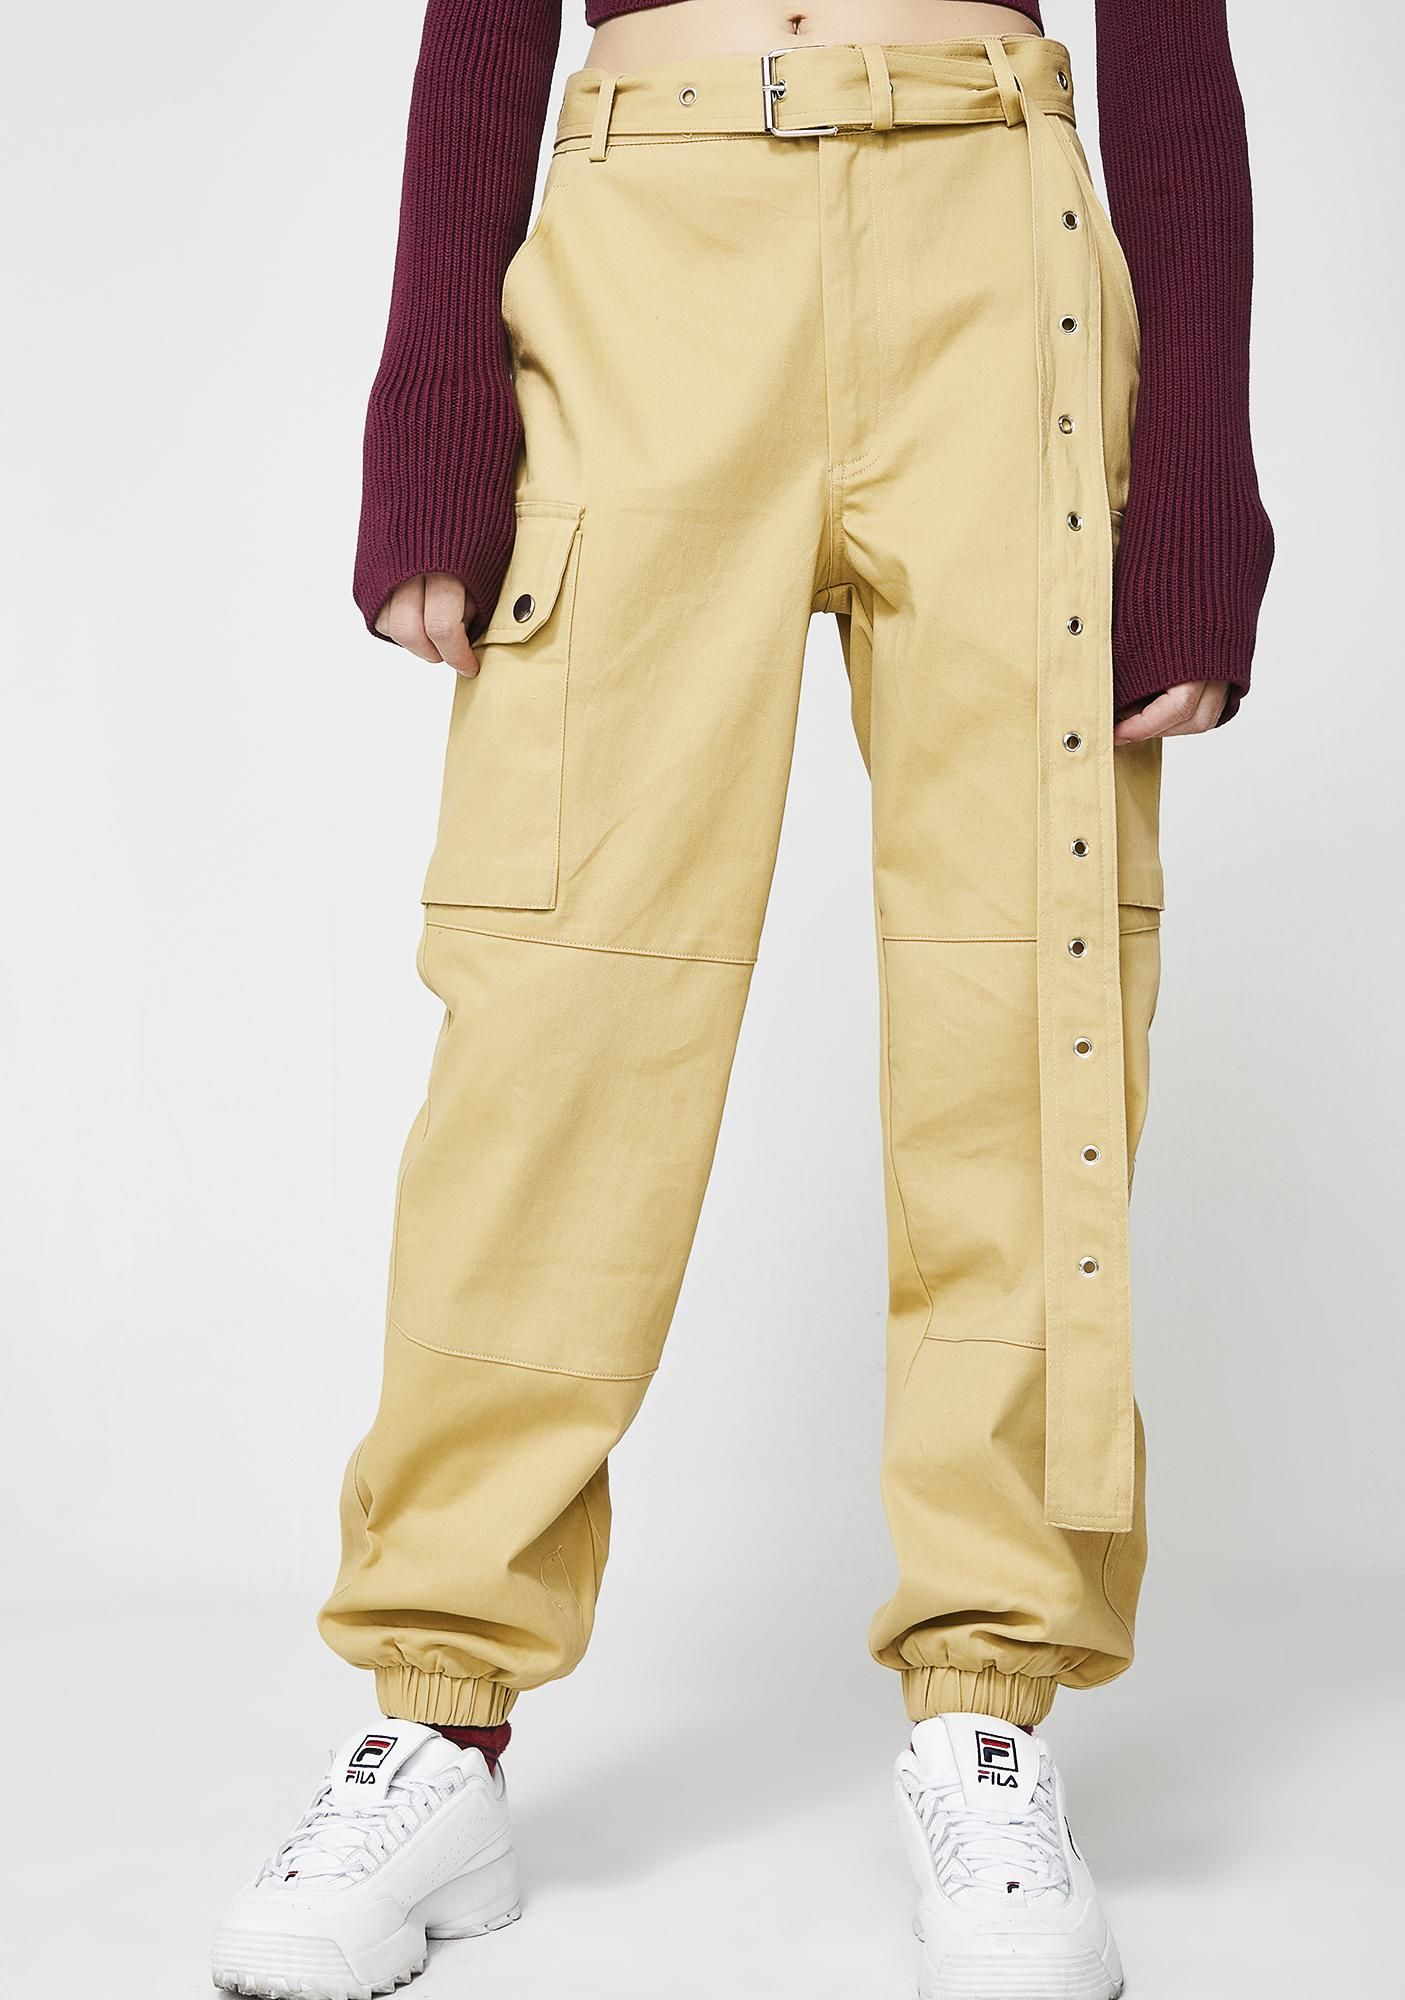 1df07a2b Don't Test Me Cargo Pants cuz they don't wanna mess with ya. These dope af  yellowish tan cargo pants have a comfy fit, a belted waist, and banded  ankles.